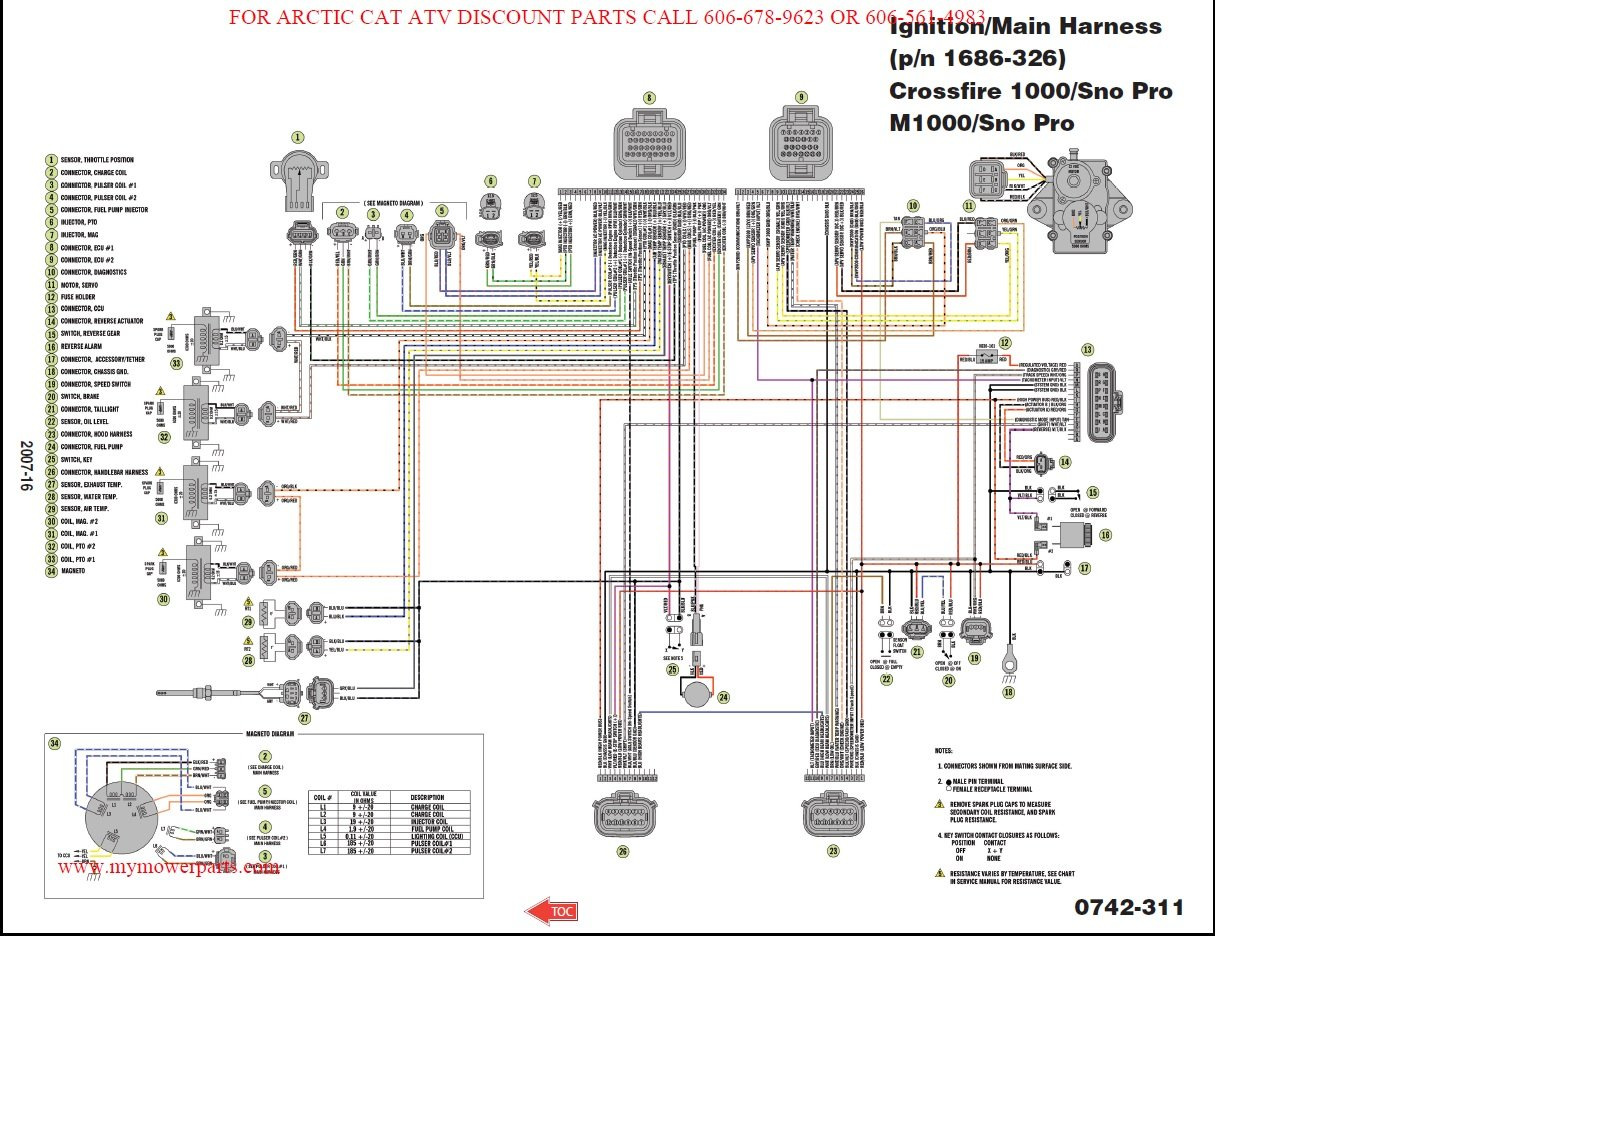 hight resolution of wiring diagram arctic cat f8 wiring diagram showwire diagram 2007 arctic cat wiring diagram sample wiring